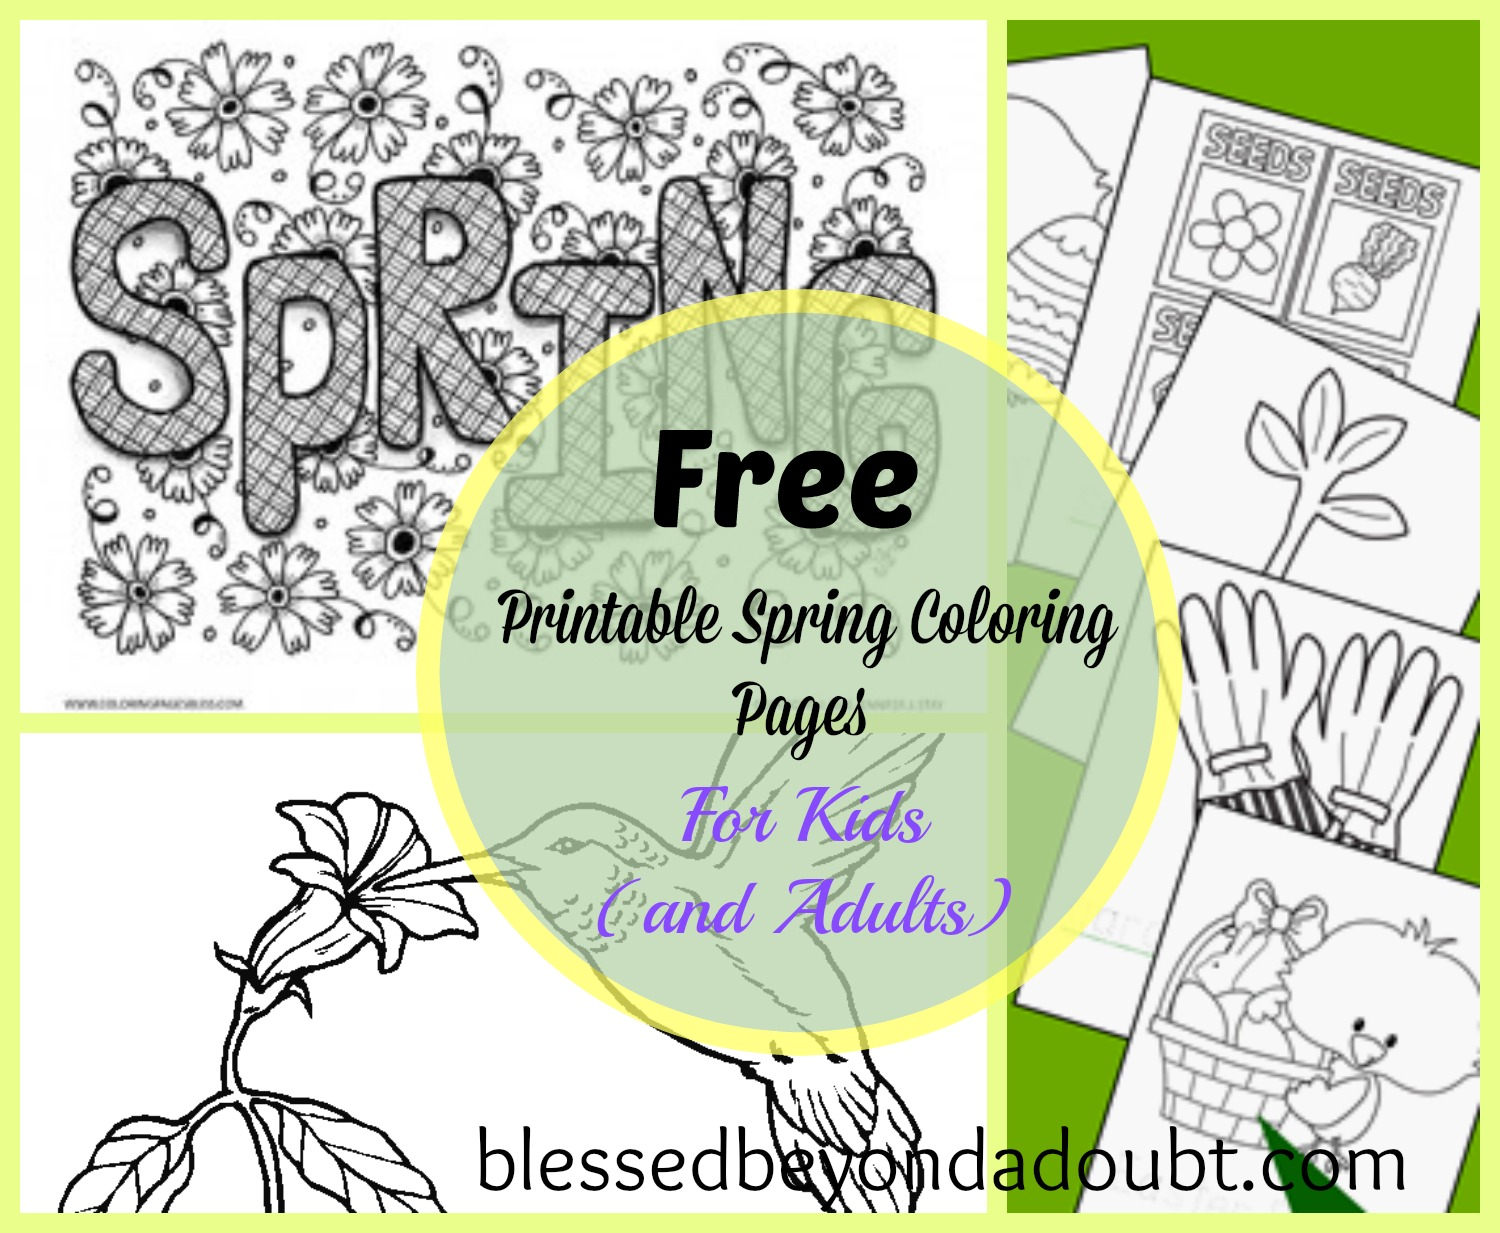 Spring coloring pages for adults free - Picmonkey Collage